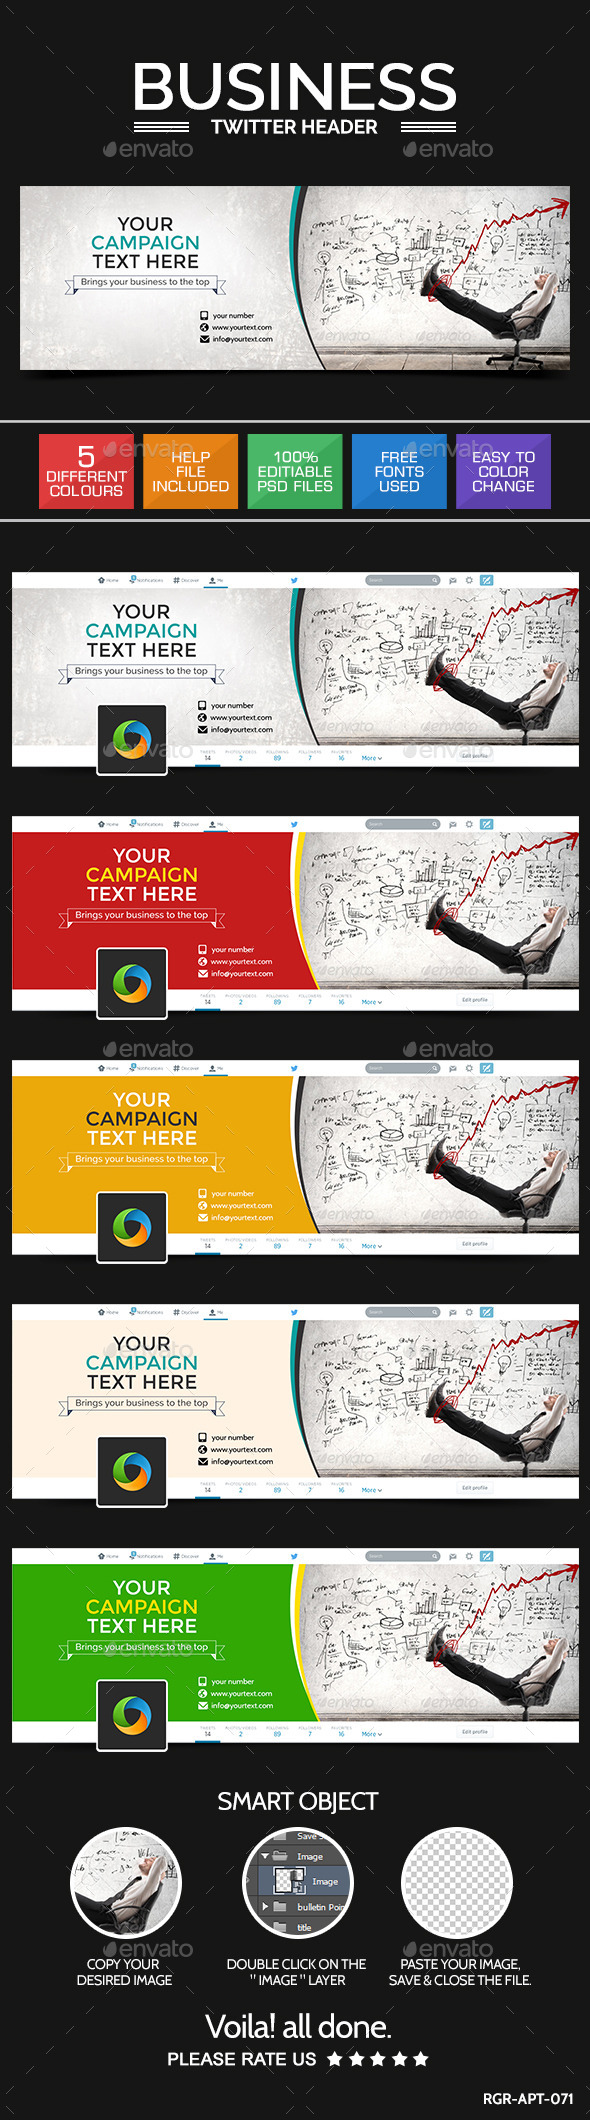 GraphicRiver Business Twitter Header 9150858